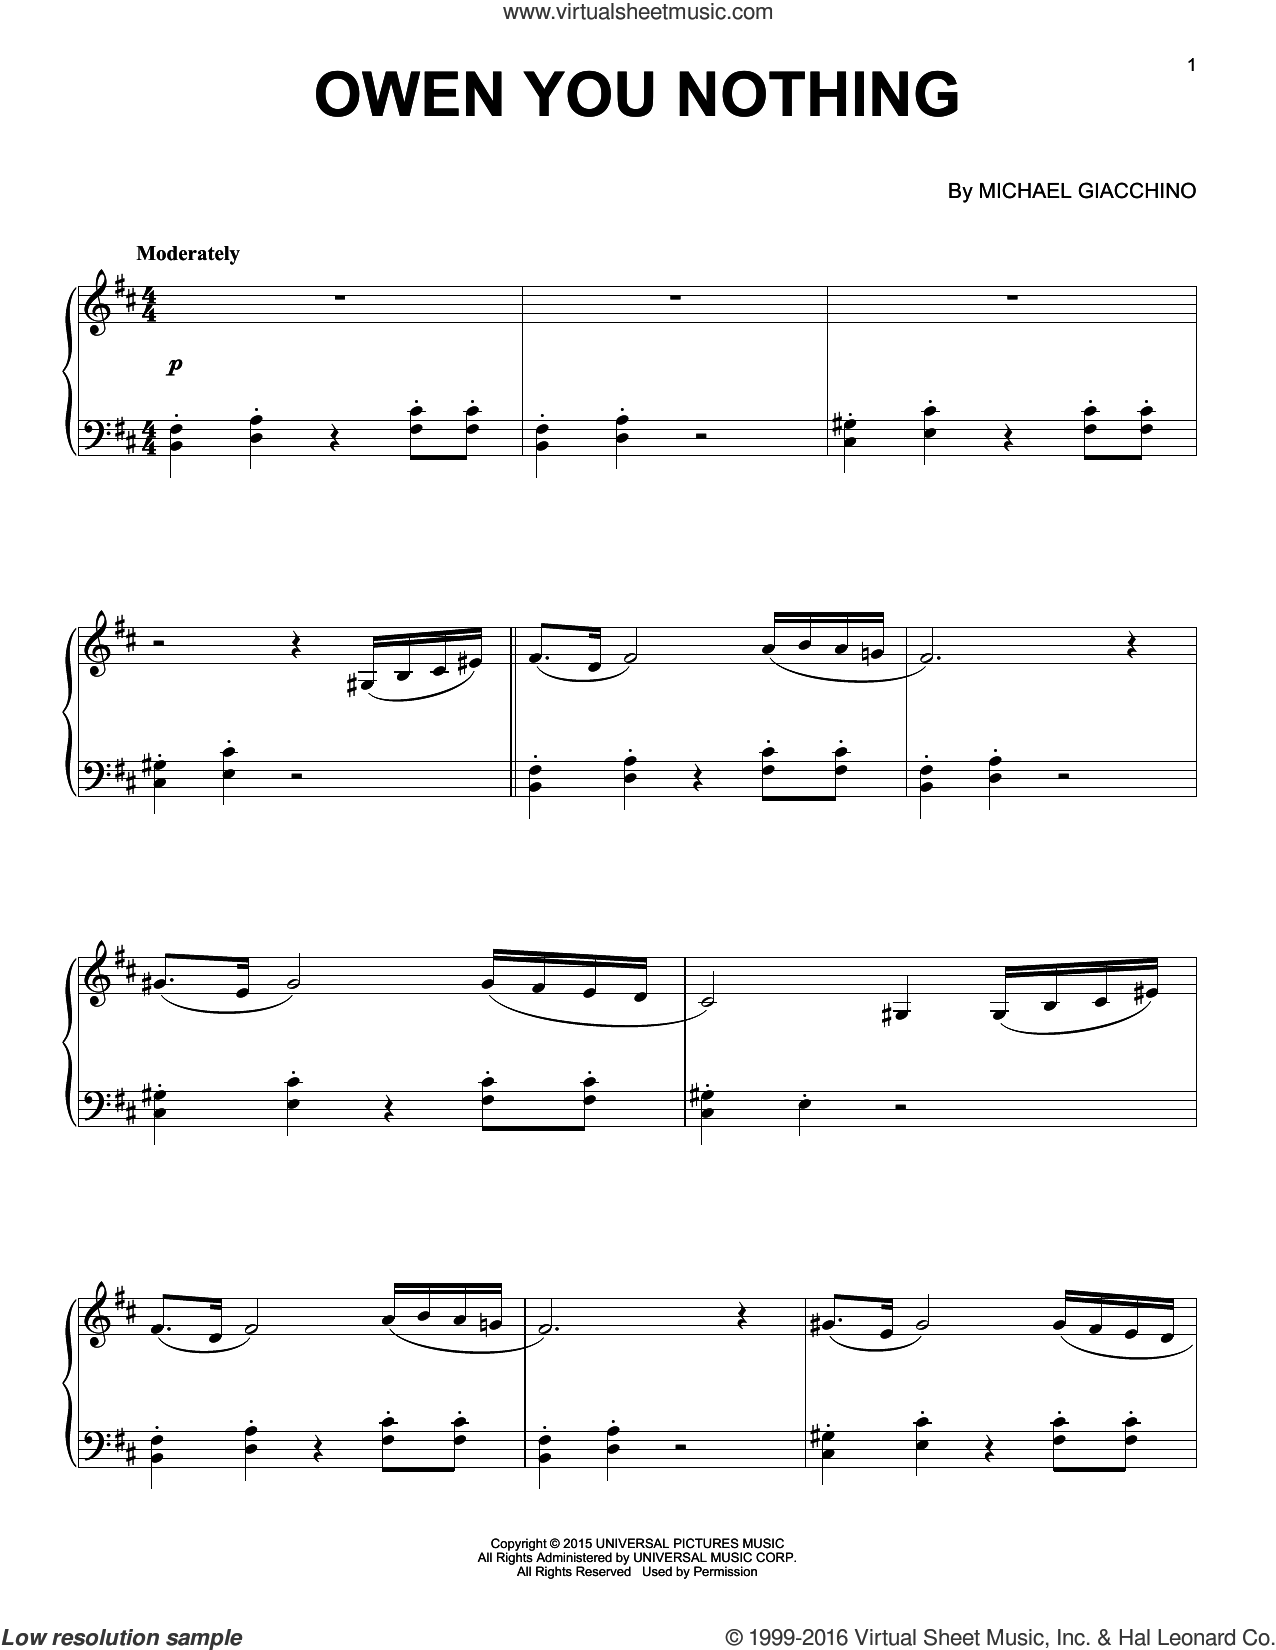 Owen You Nothing from Jurassic World sheet music for piano solo by Michael Giacchino, classical score, intermediate skill level